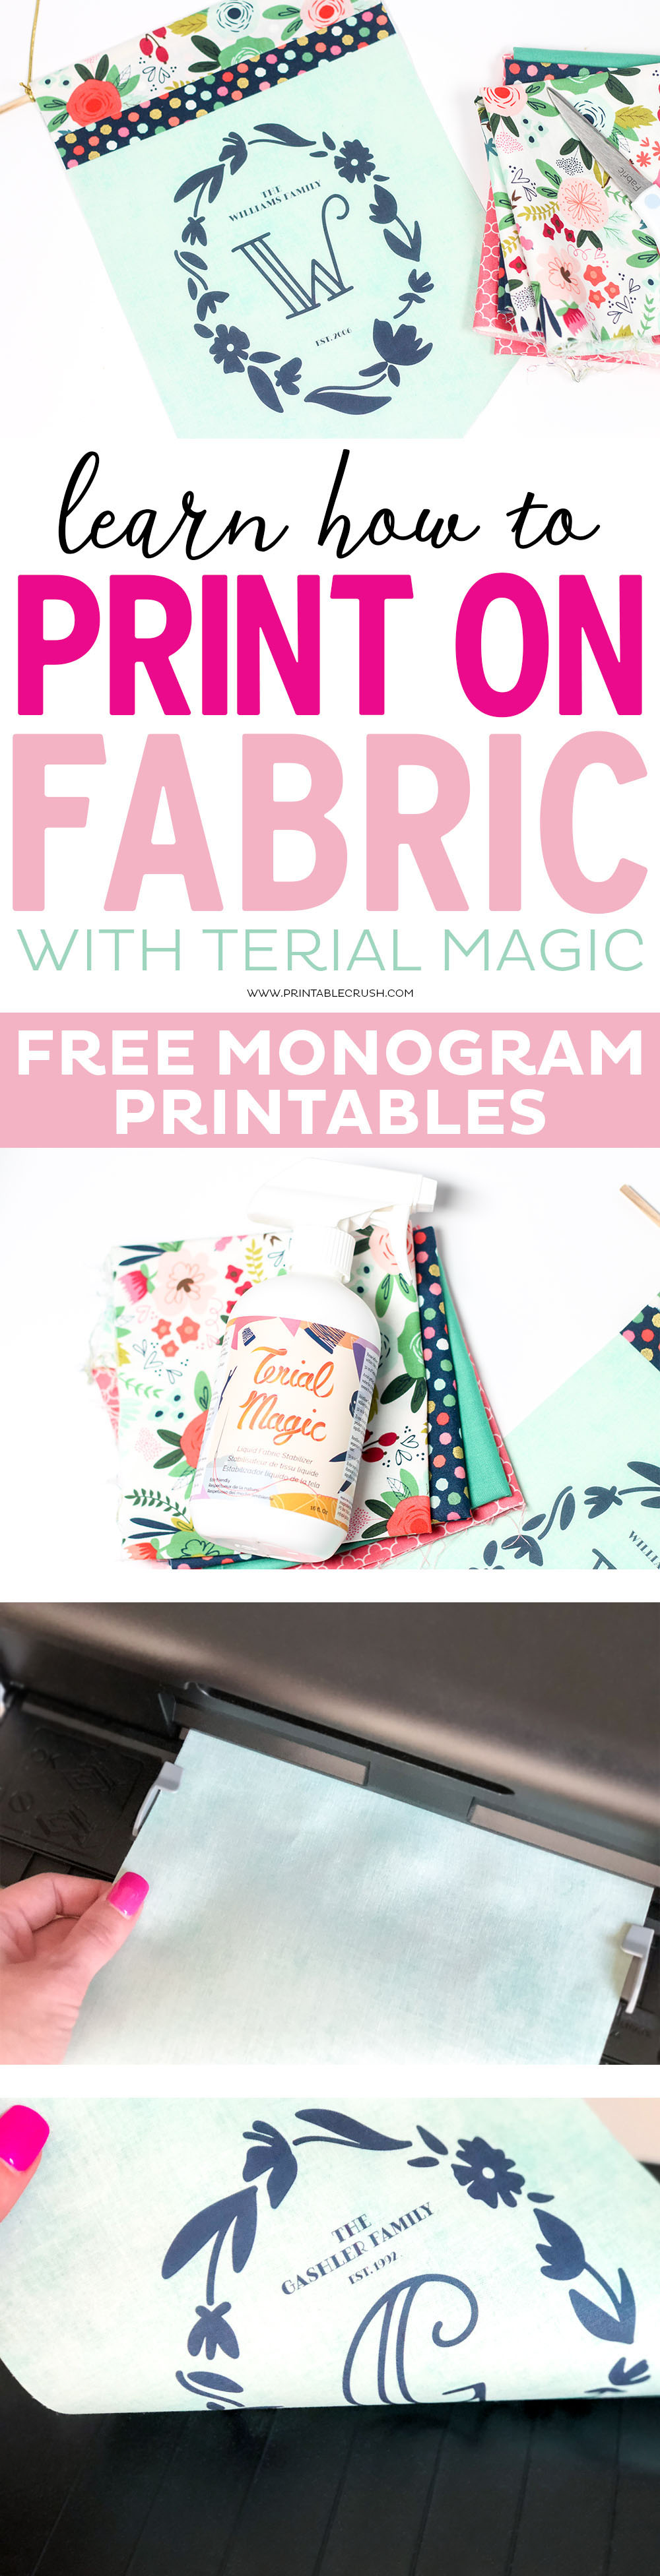 Learn to Print on Fabric with Terial Magic - Printable Crush